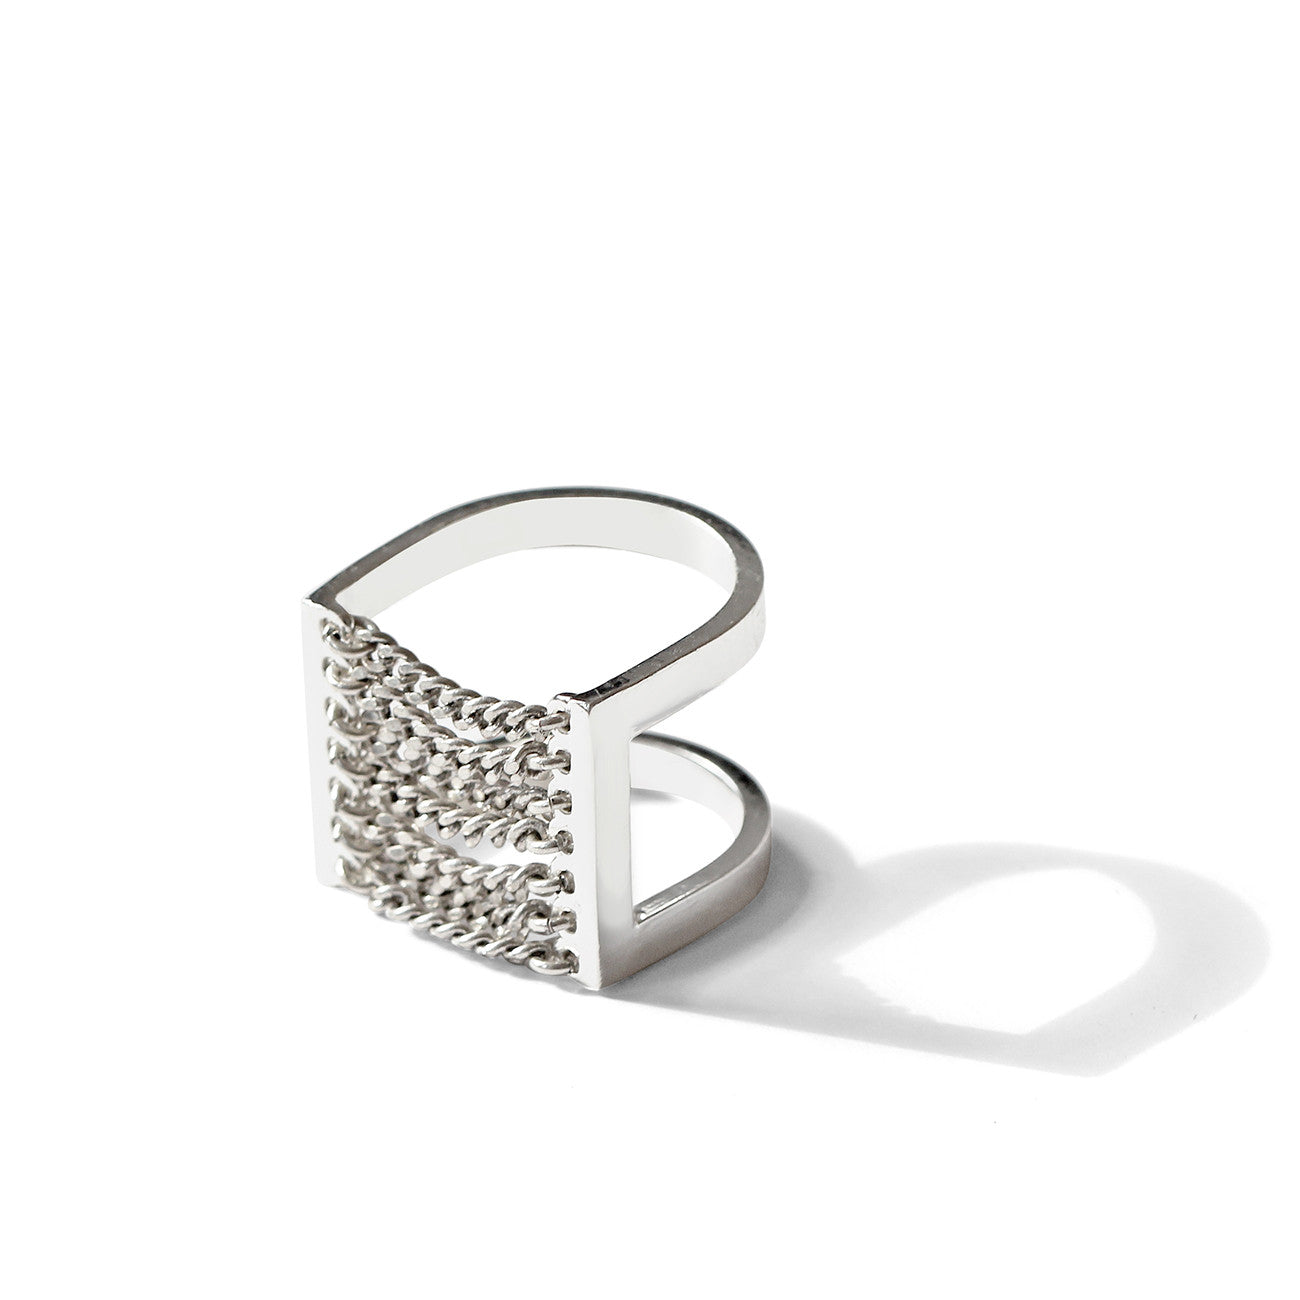 Jenny Bird Canopy Ring in High Polish Silver